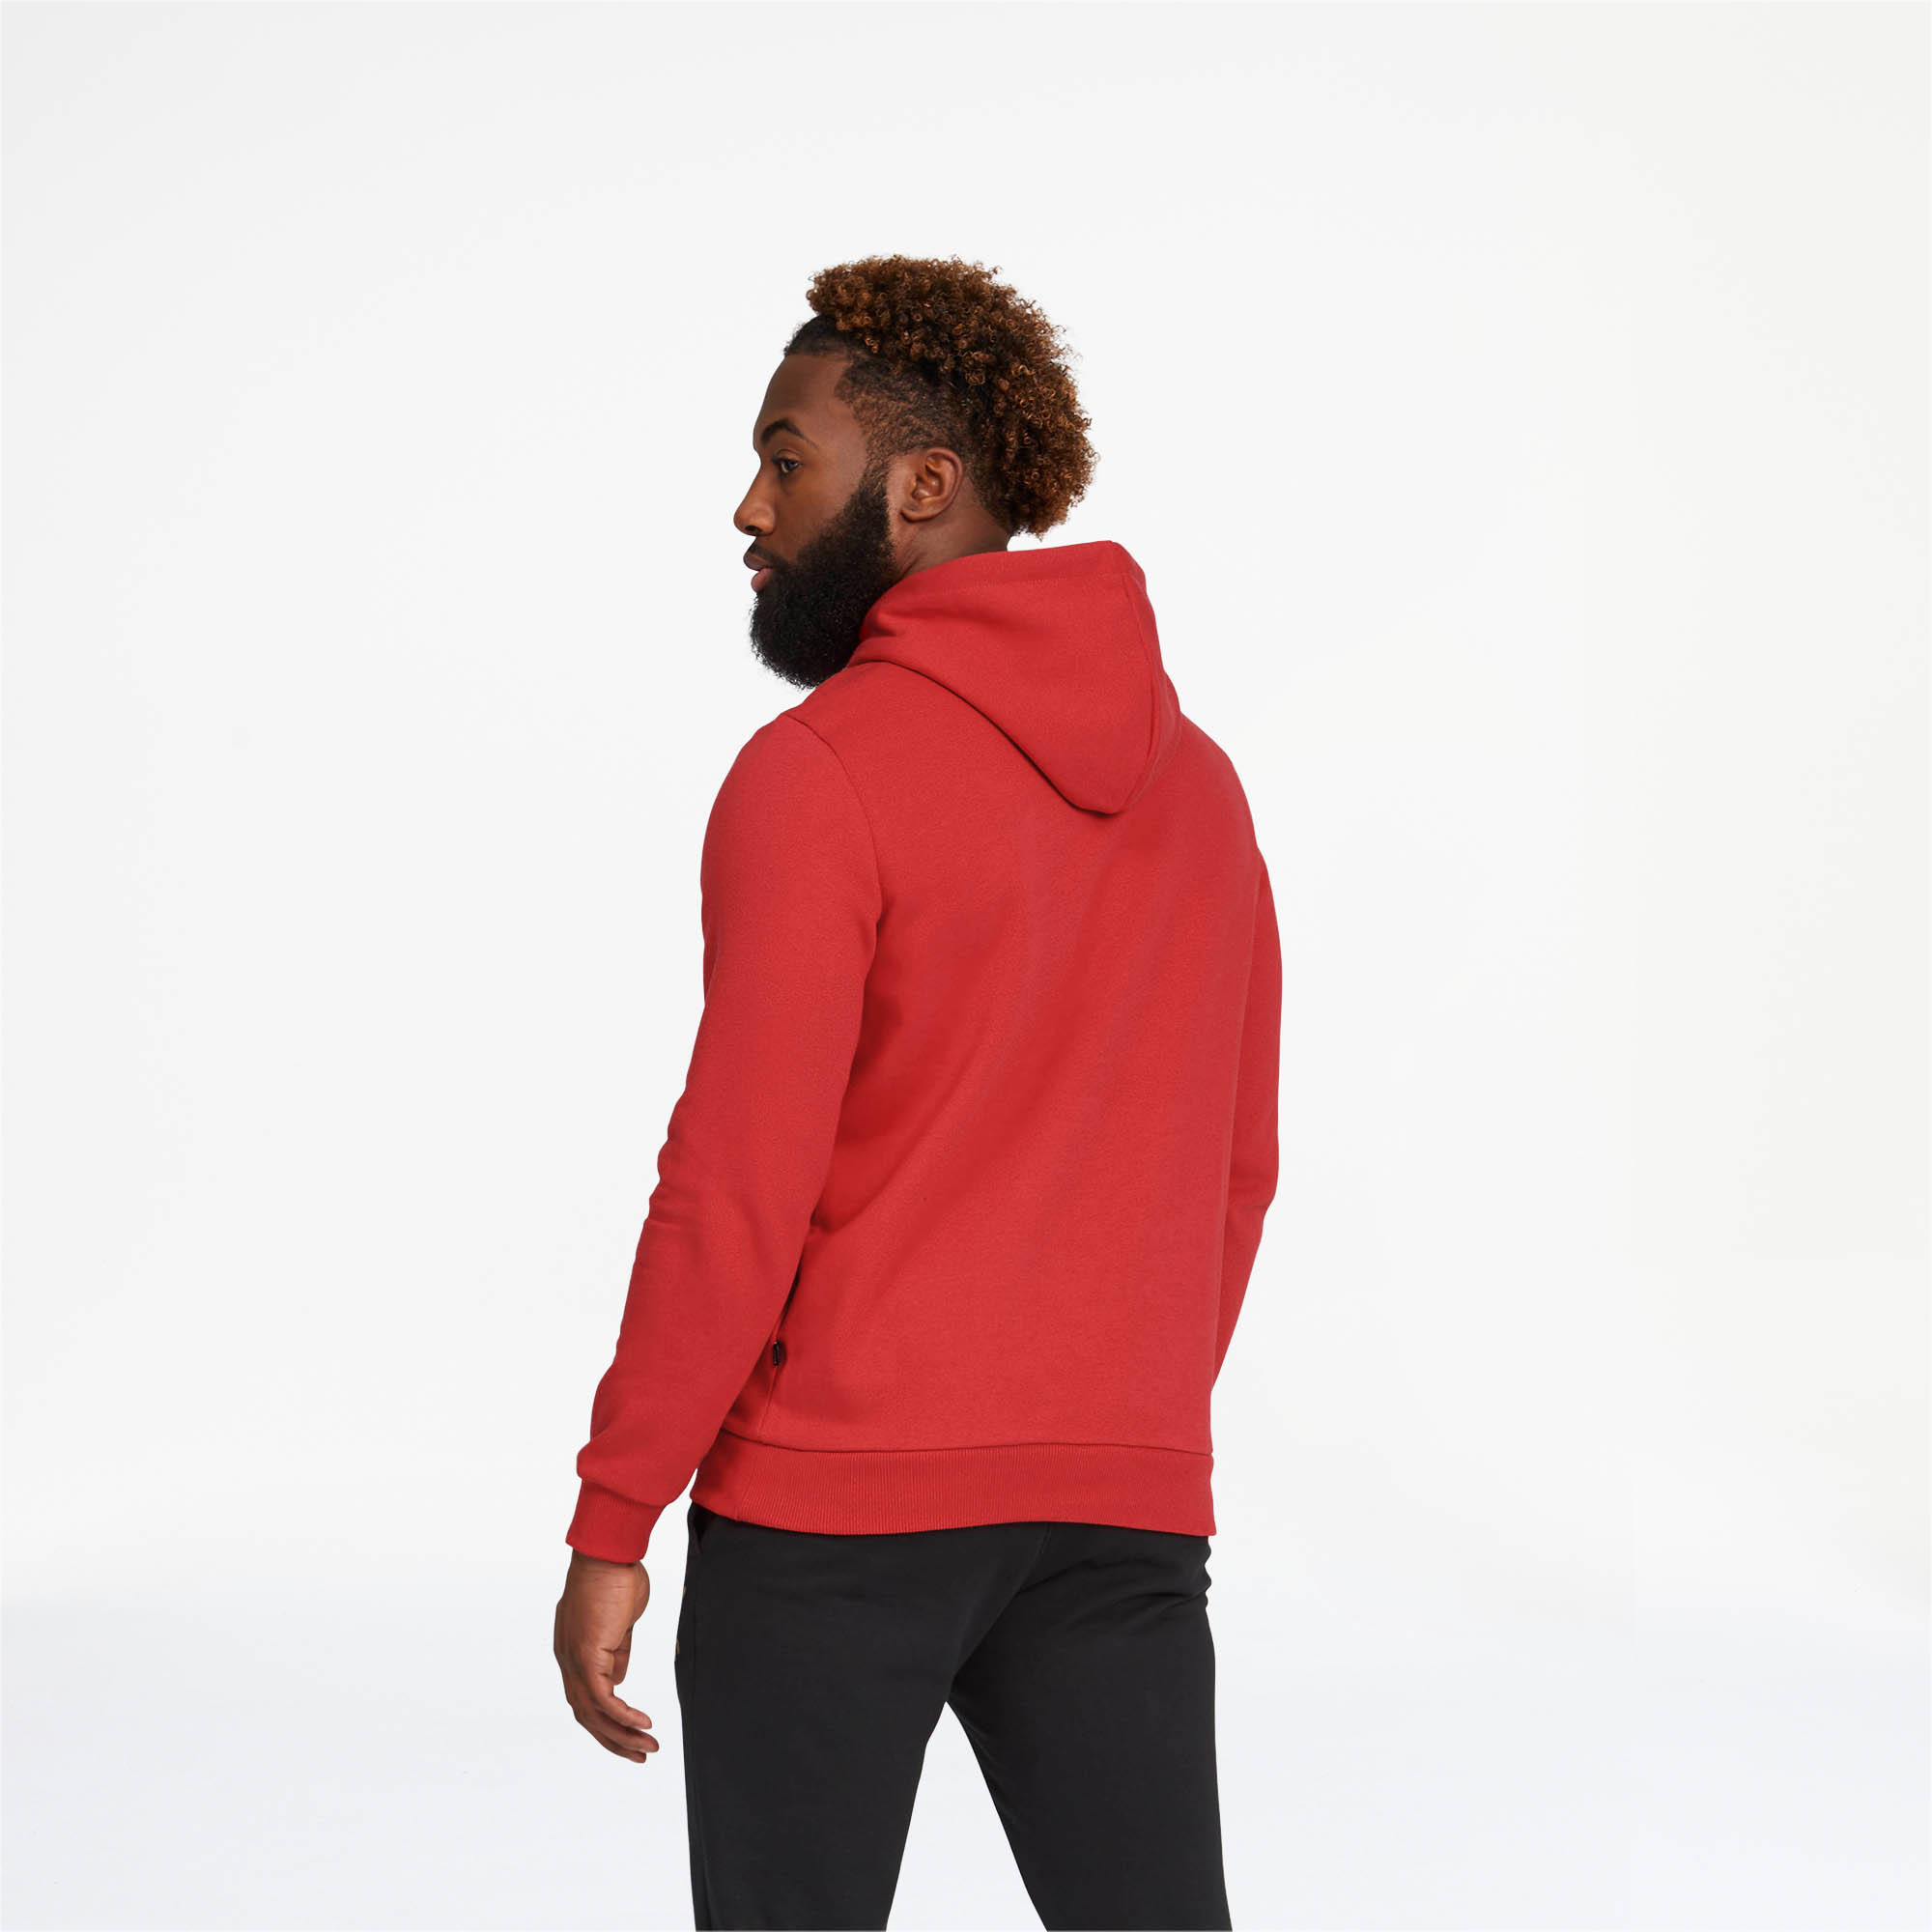 PUMA-Essentials-Men-039-s-Fleece-Hoodie-Men-Sweat-Basics thumbnail 17